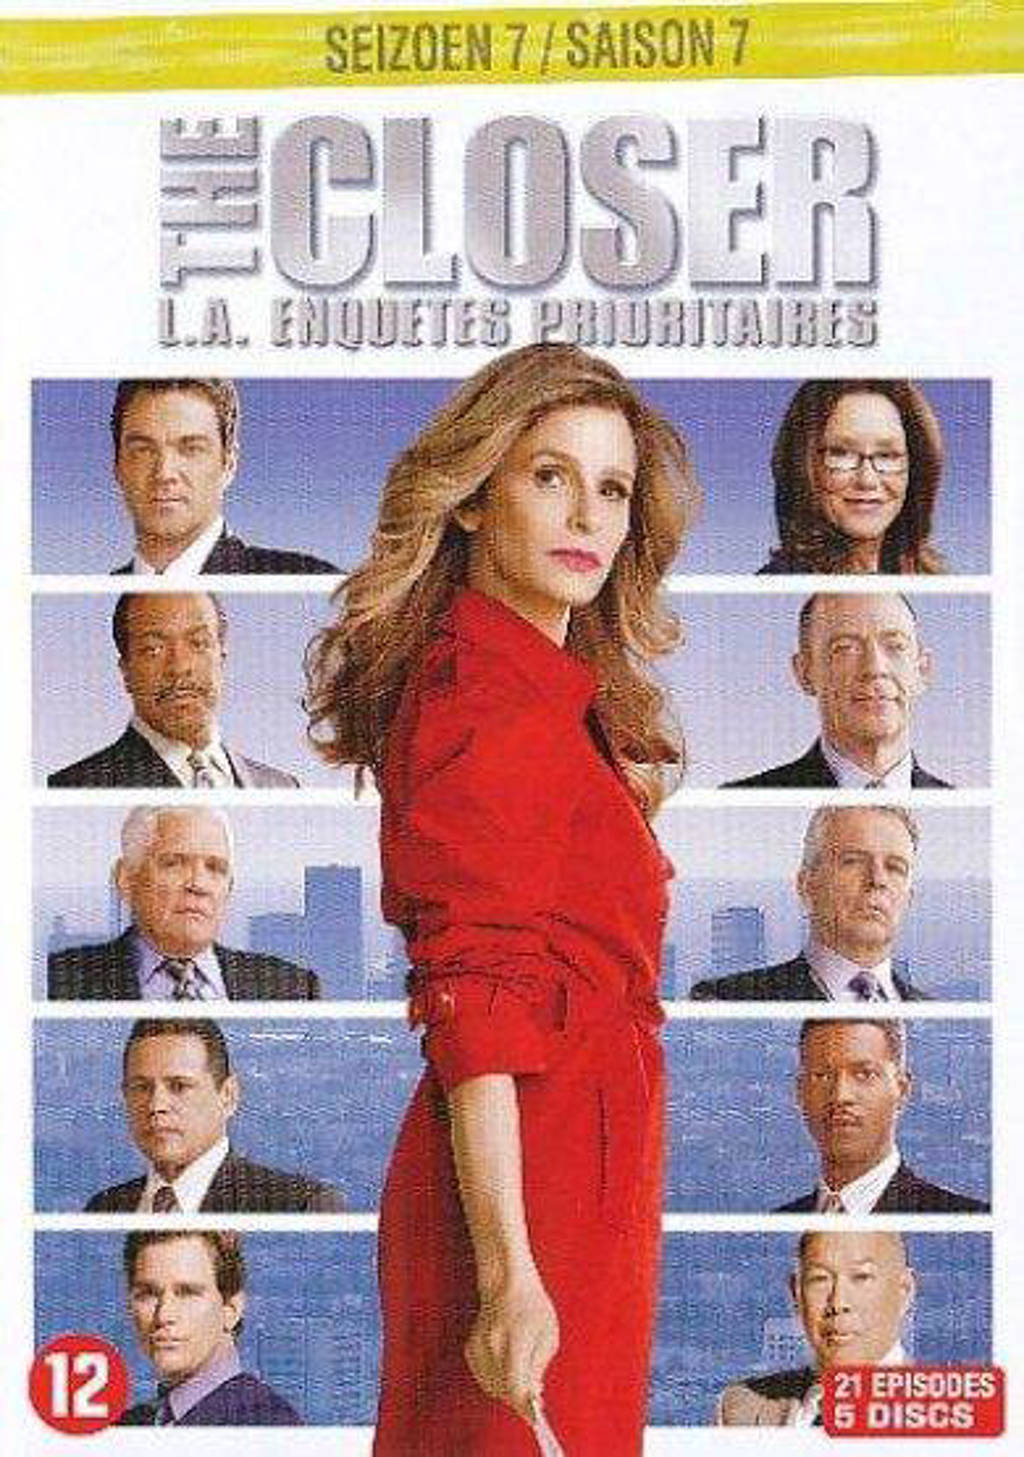 Closer - Seizoen 7 (DVD)